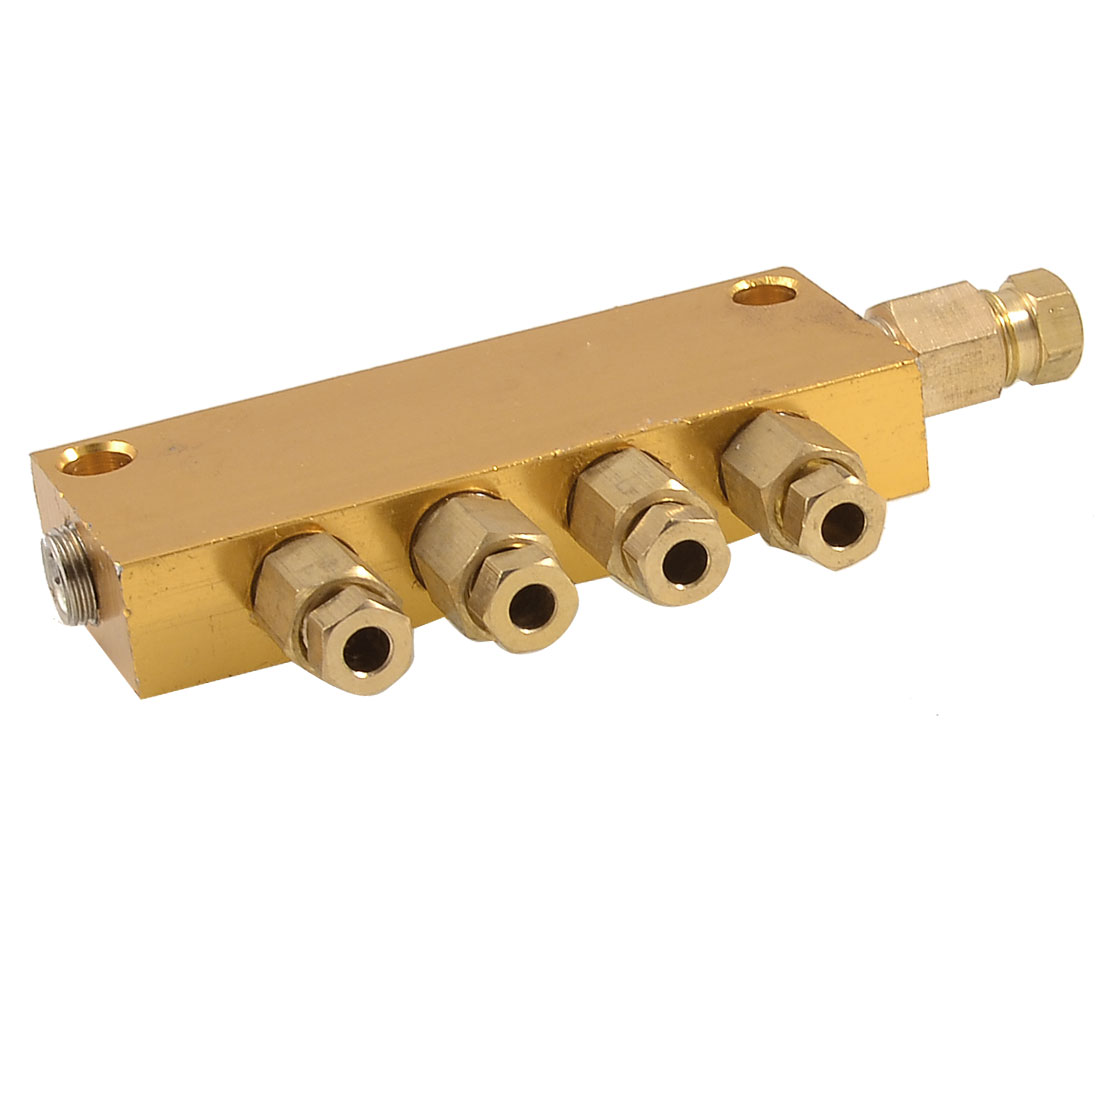 Brass 4 Ways Adjustable Distributor Manifold Block for 4mm 6mm Tube